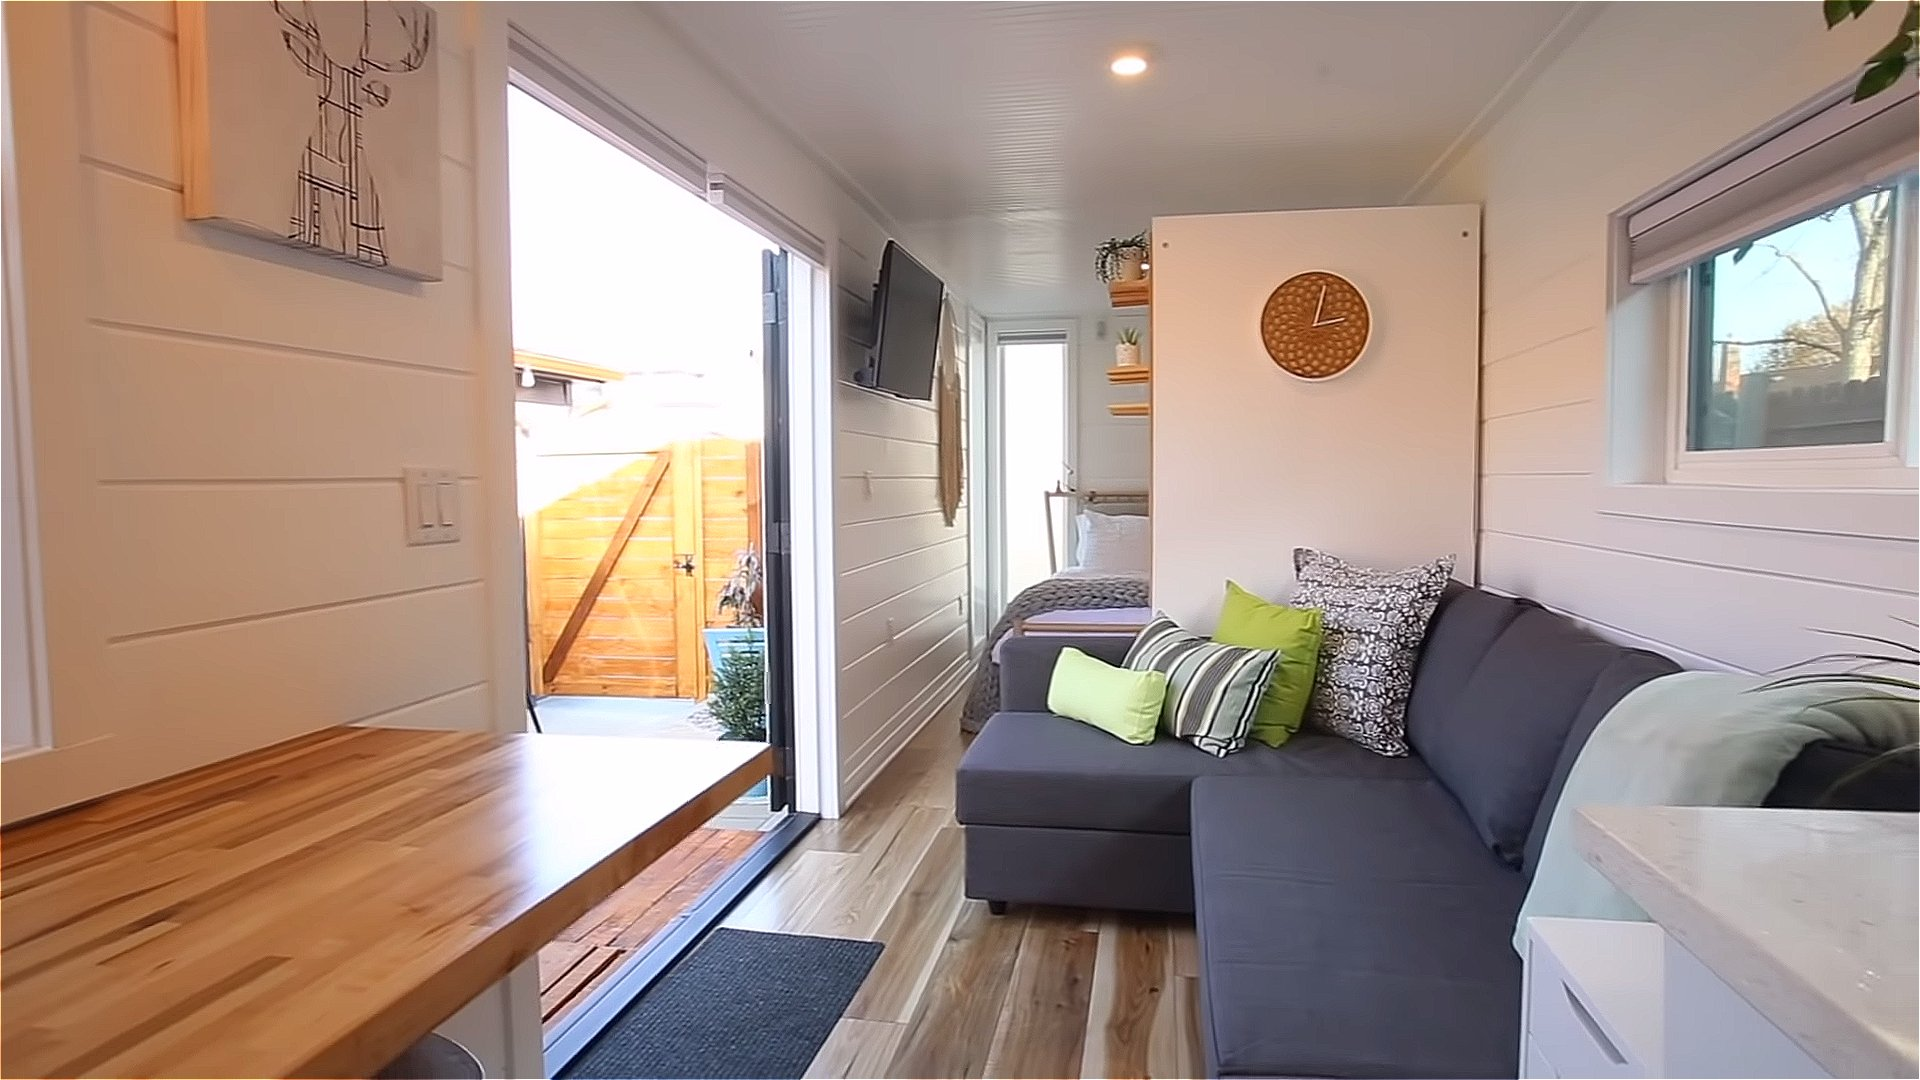 Couple Build 33Foot Shipping Container Tiny House in